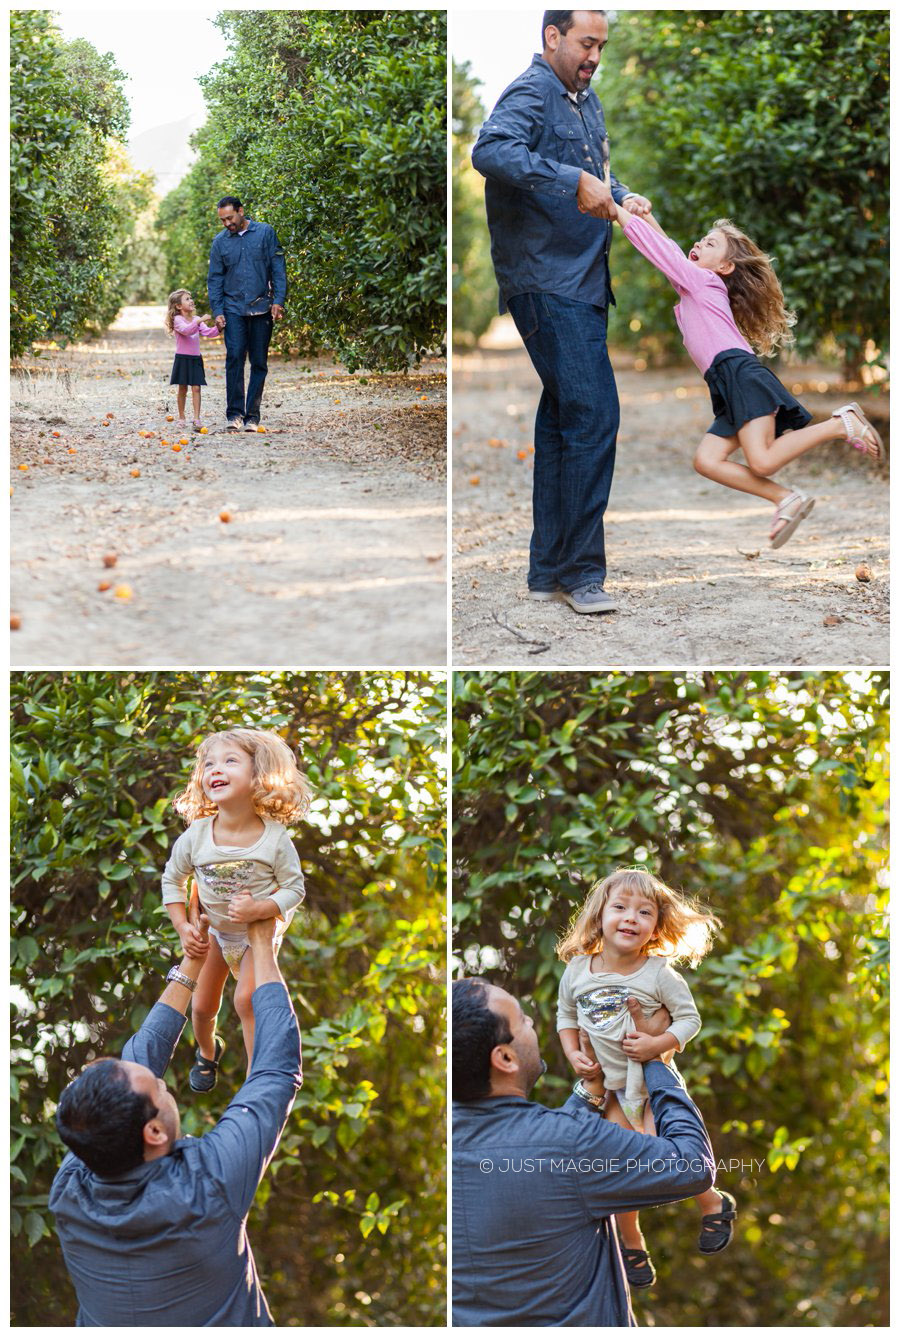 Daddy and daughter family portrait photography by Just Maggie Photography - Santa Clarita Family Portrait Photographer